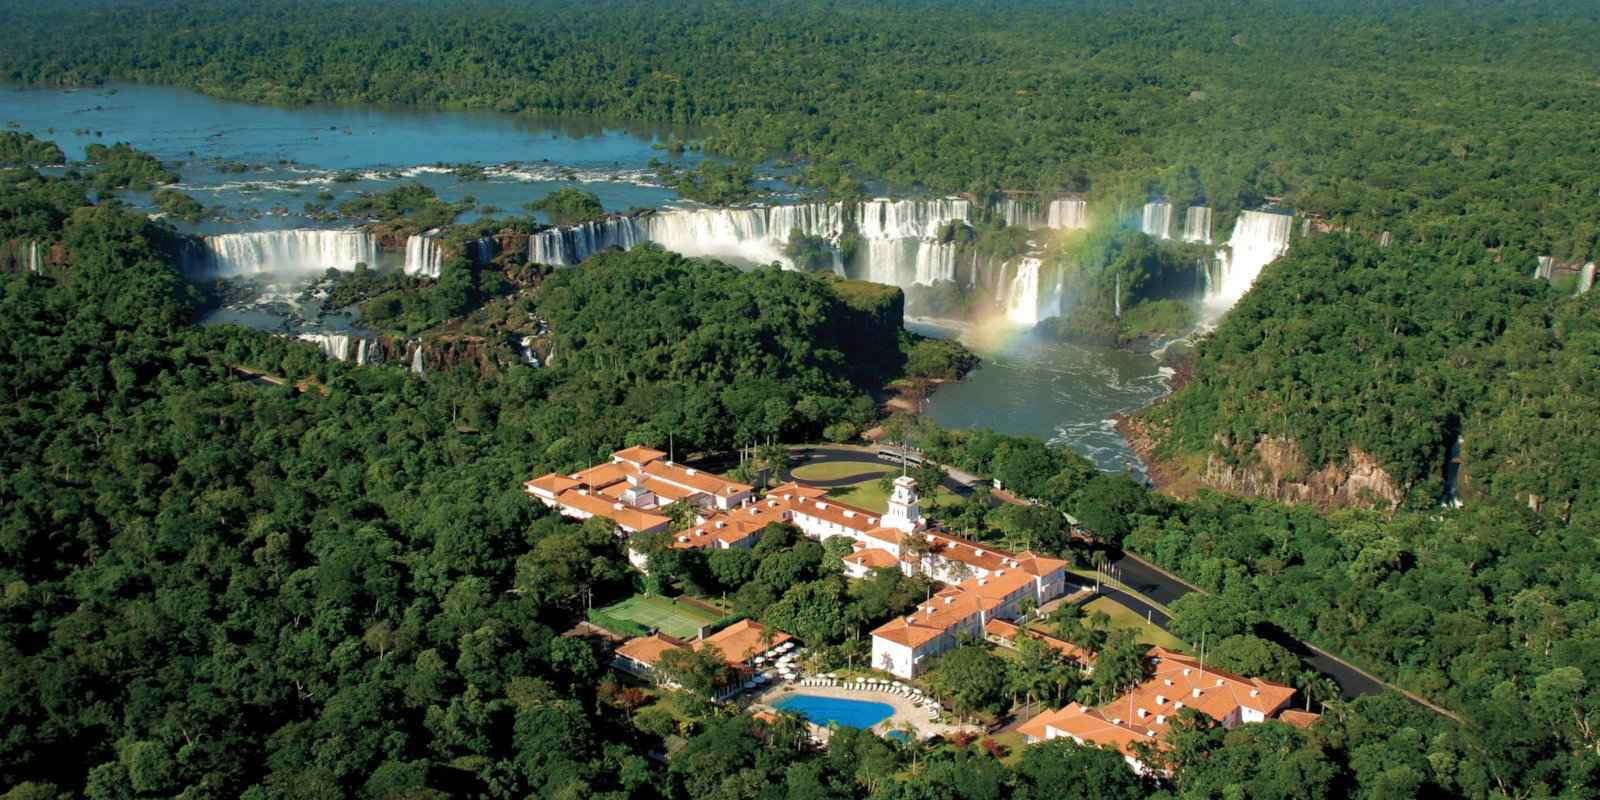 Gay travel to Iguazu Falls - stay at the Belmond for views of the falls from your very room!